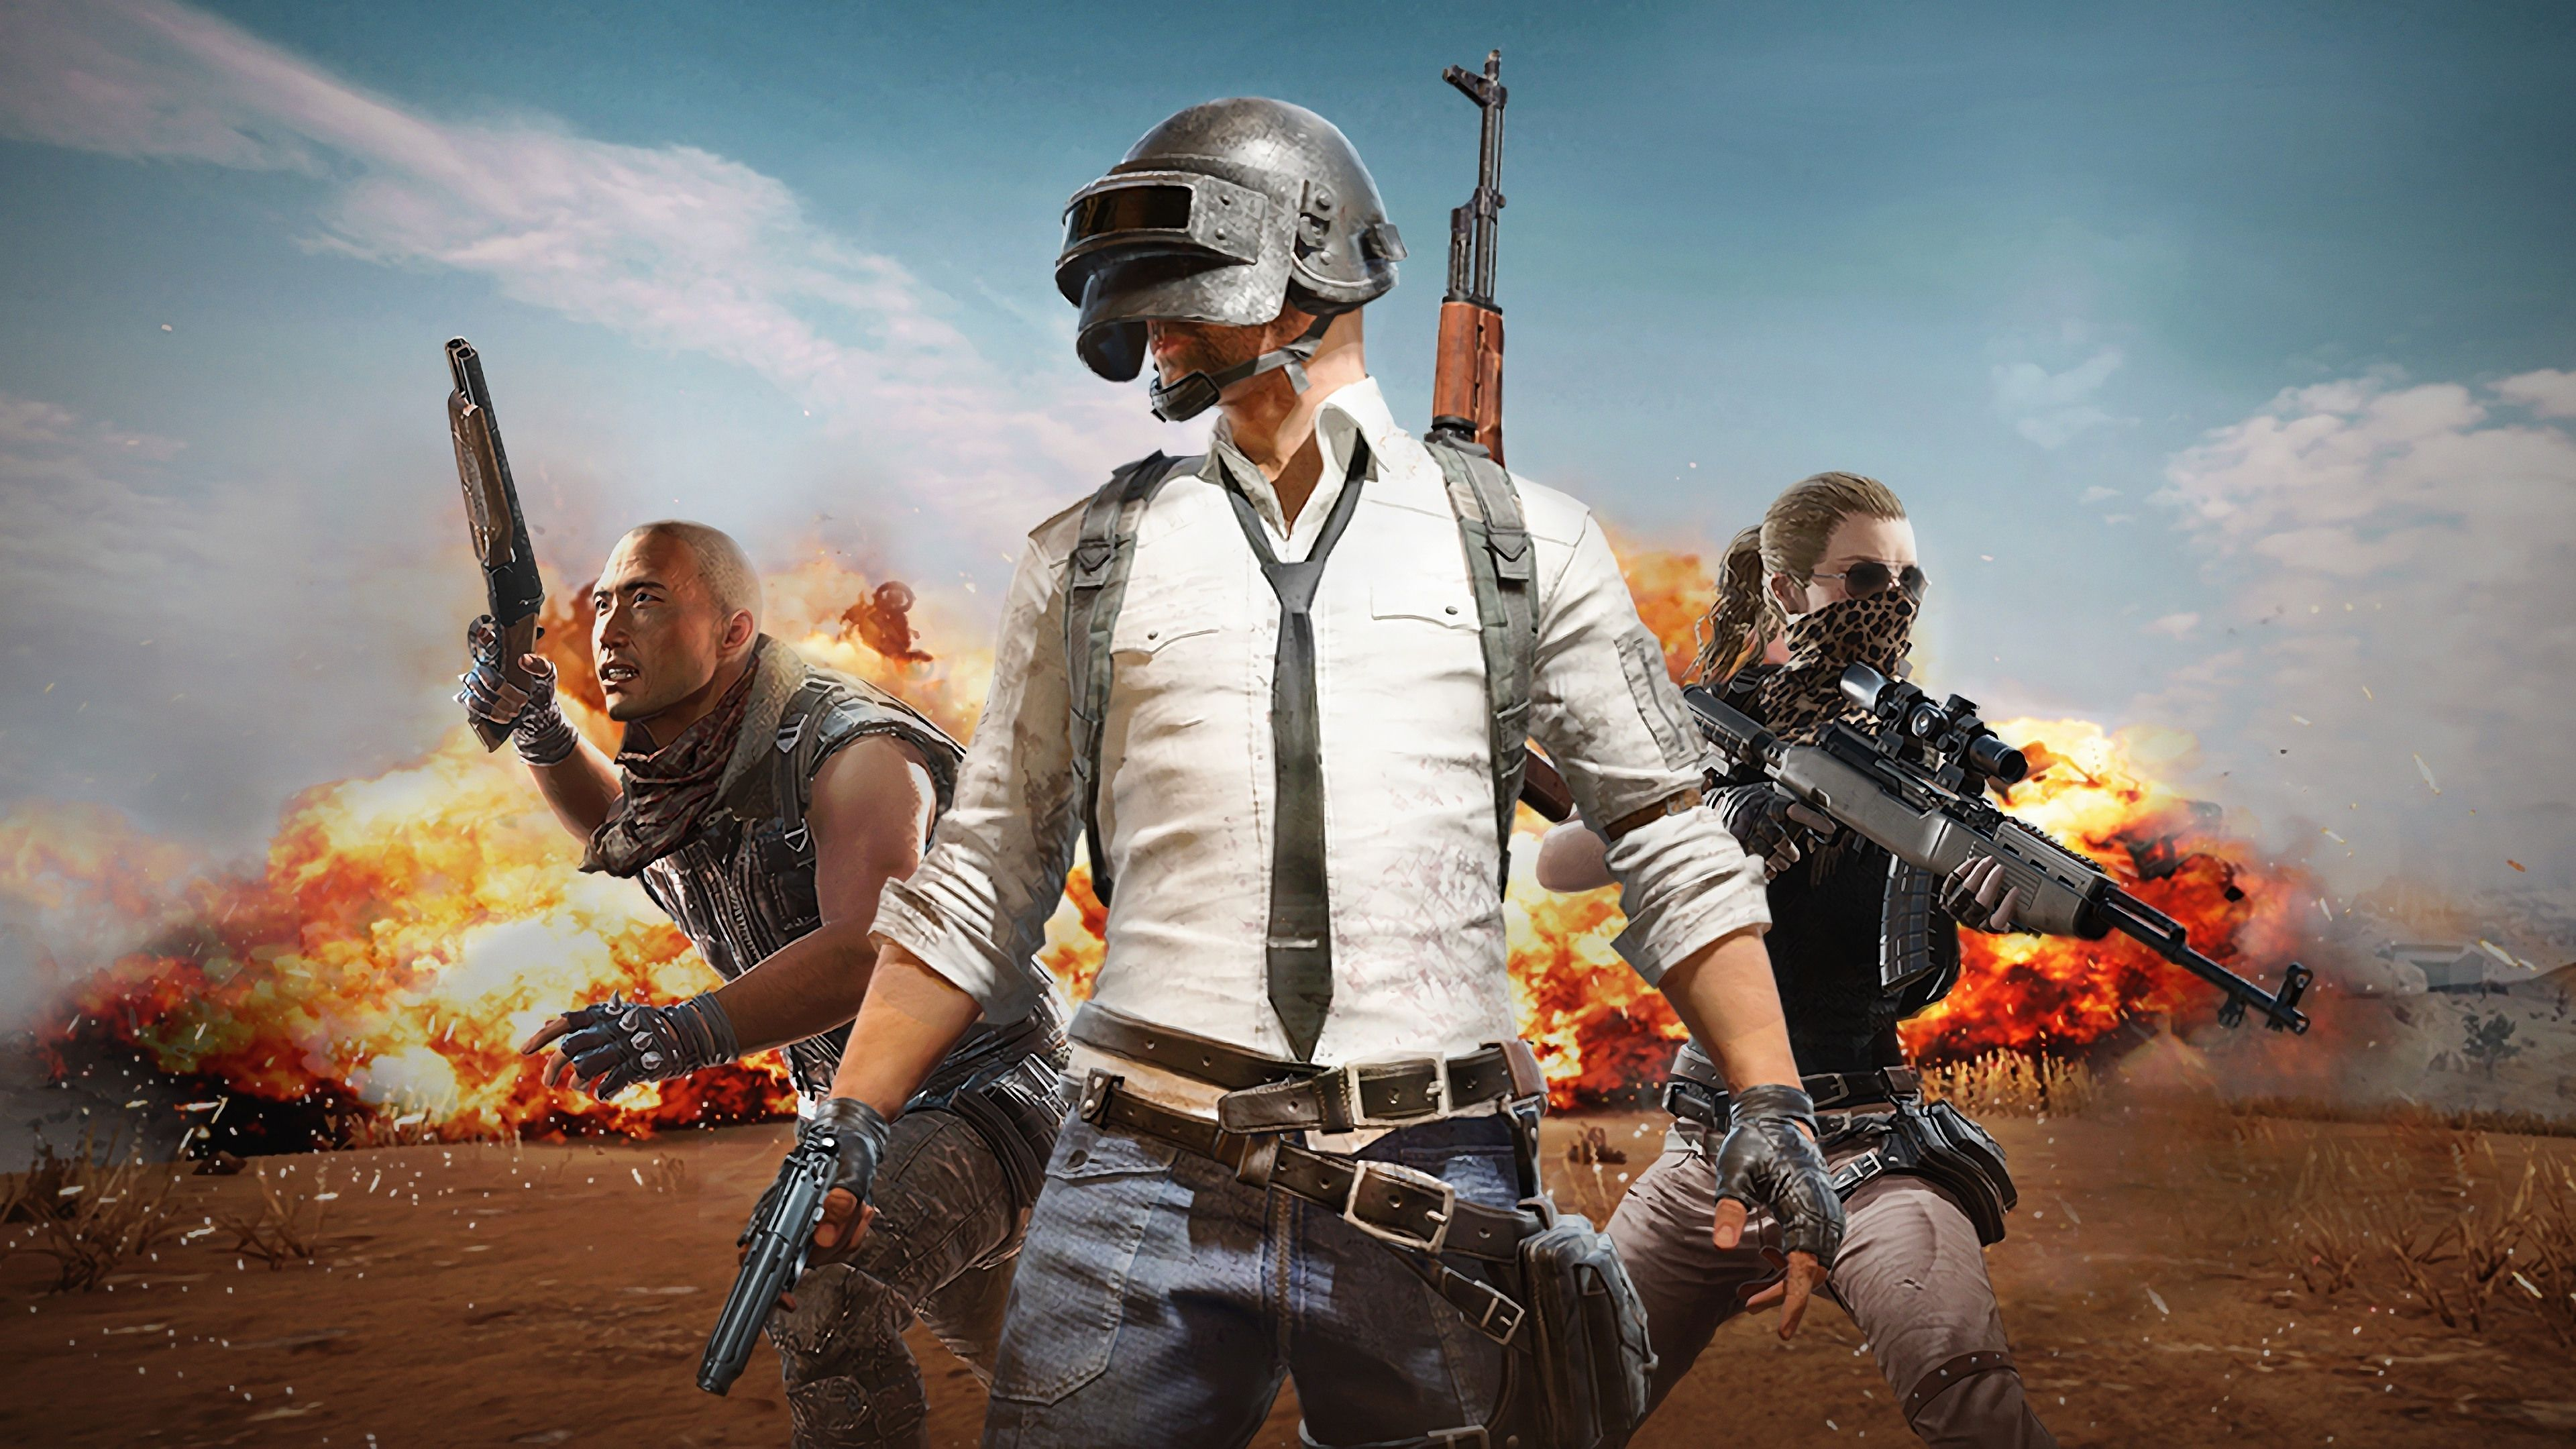 Pubg Helmet Wallpaper 4k: Pubg 4k Game Art Pubg Wallpapers, Playerunknowns